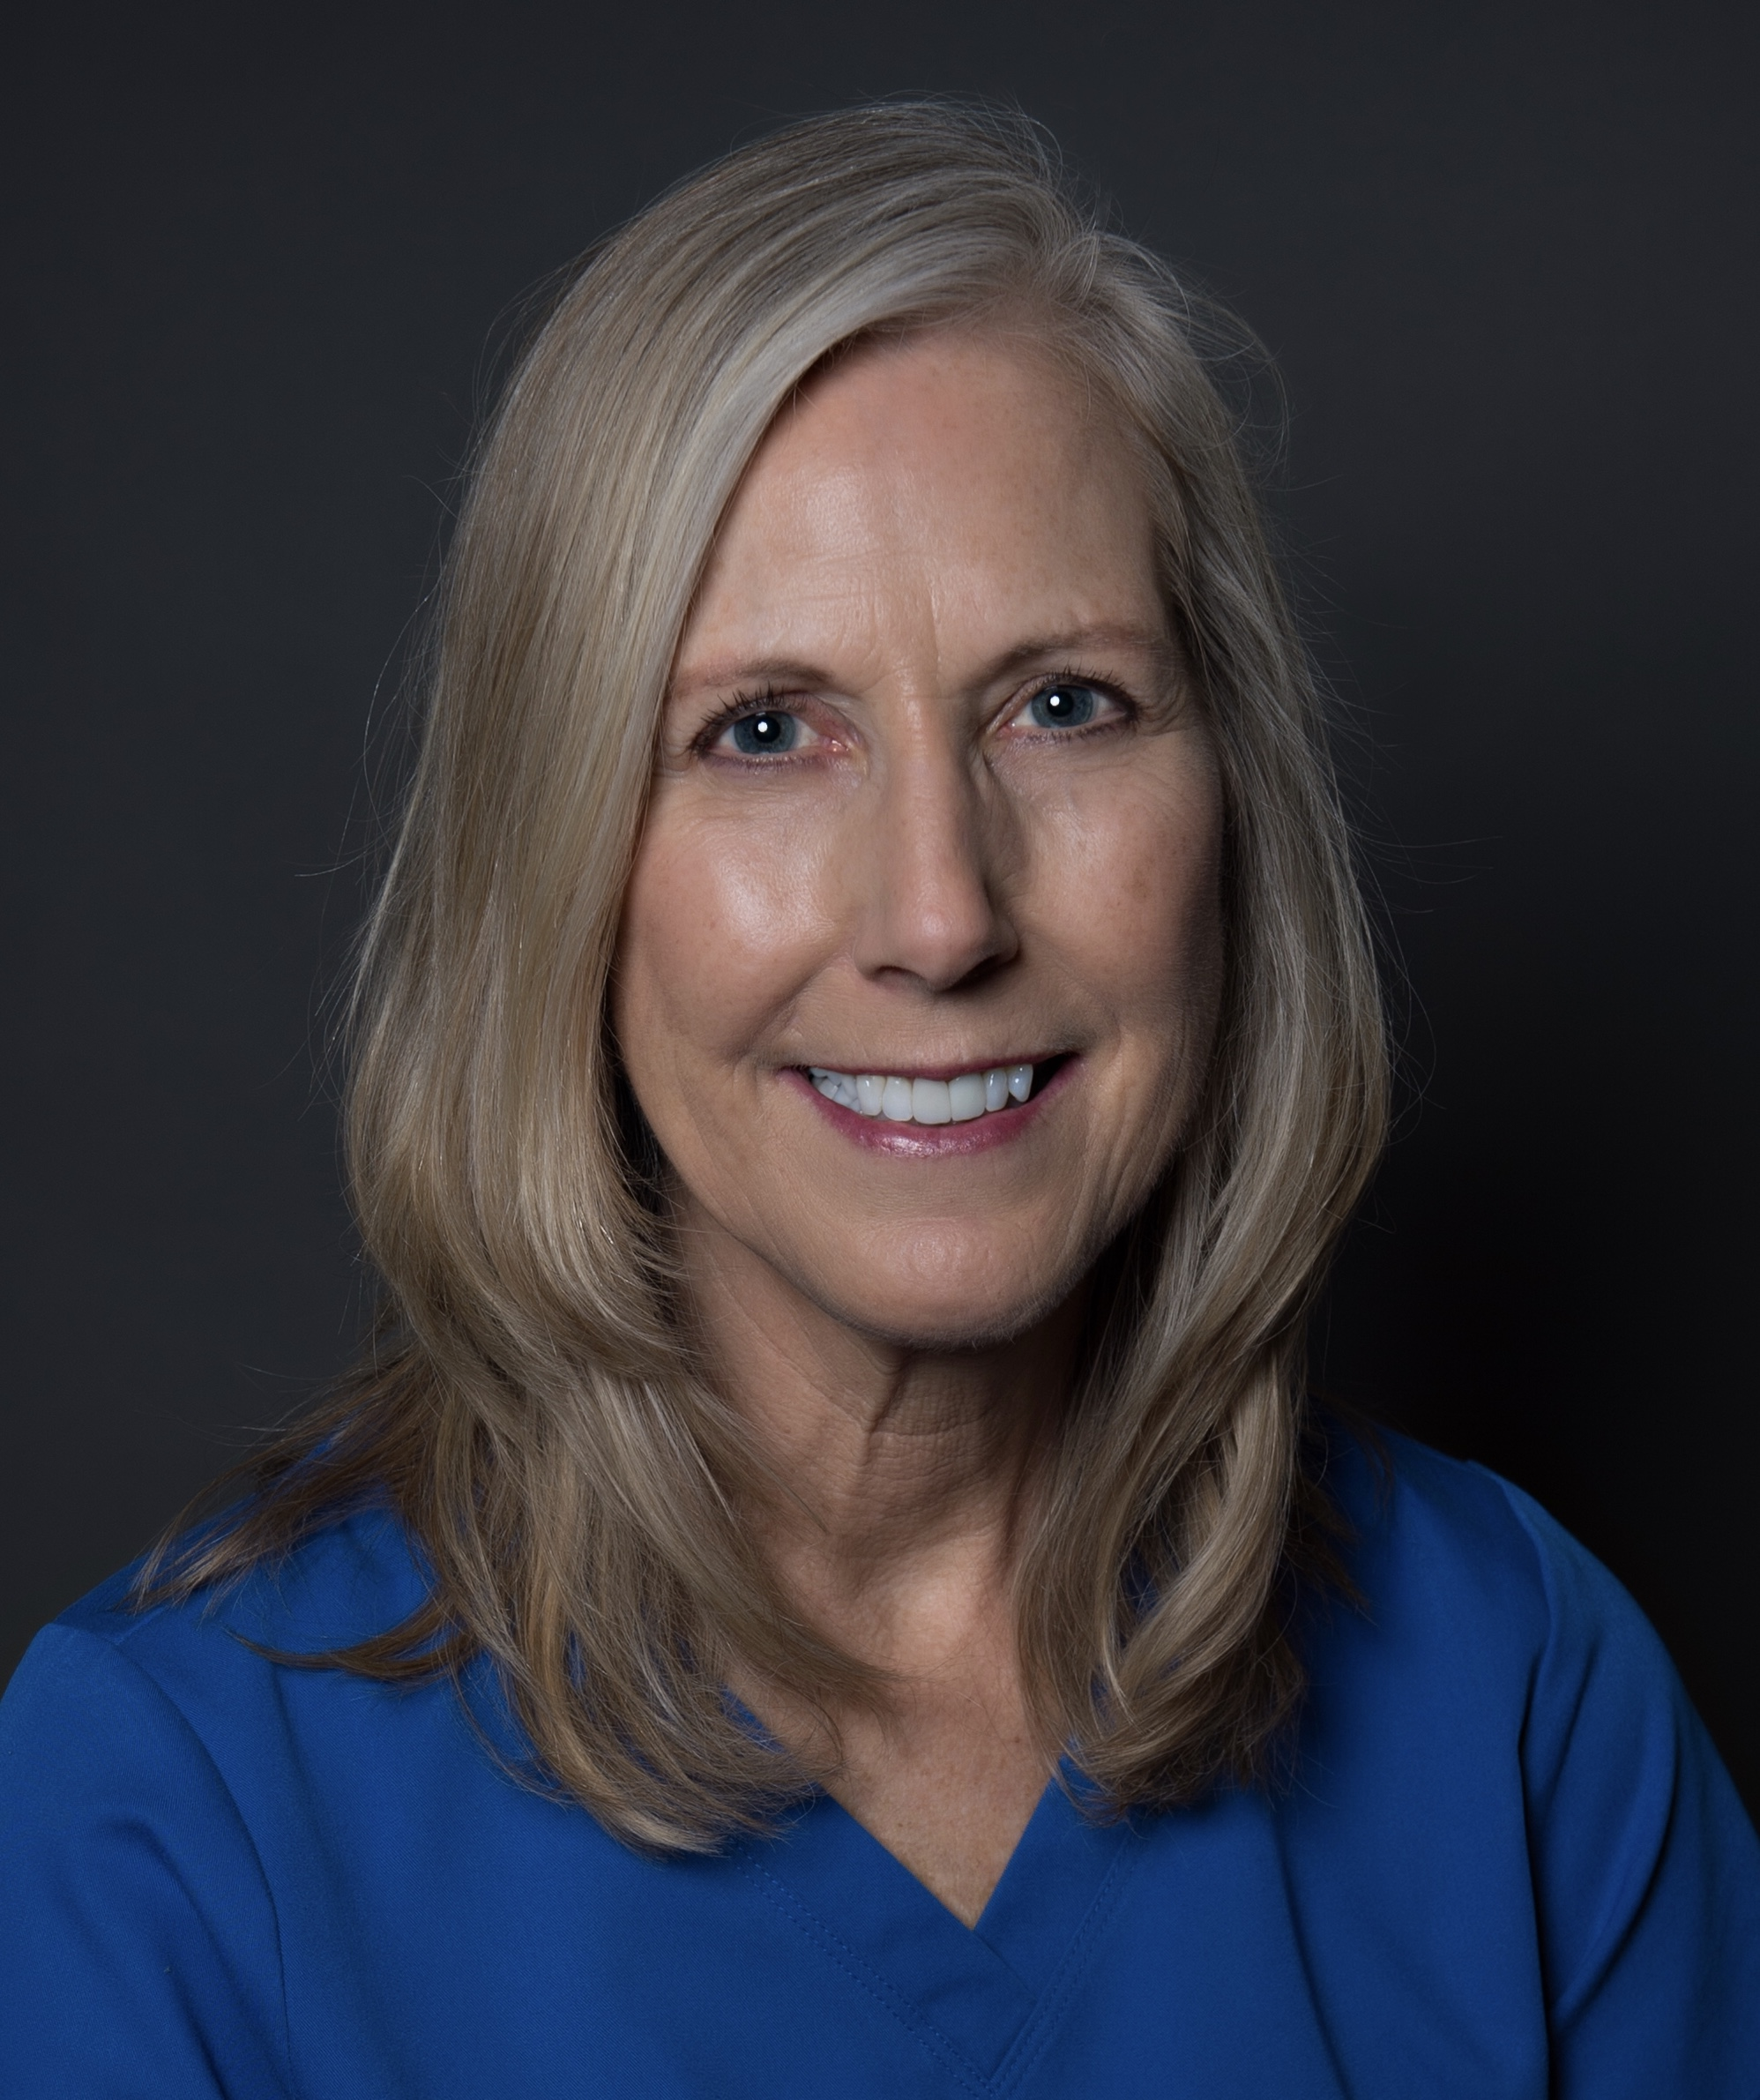 Diane Simonson, Dental Assistant